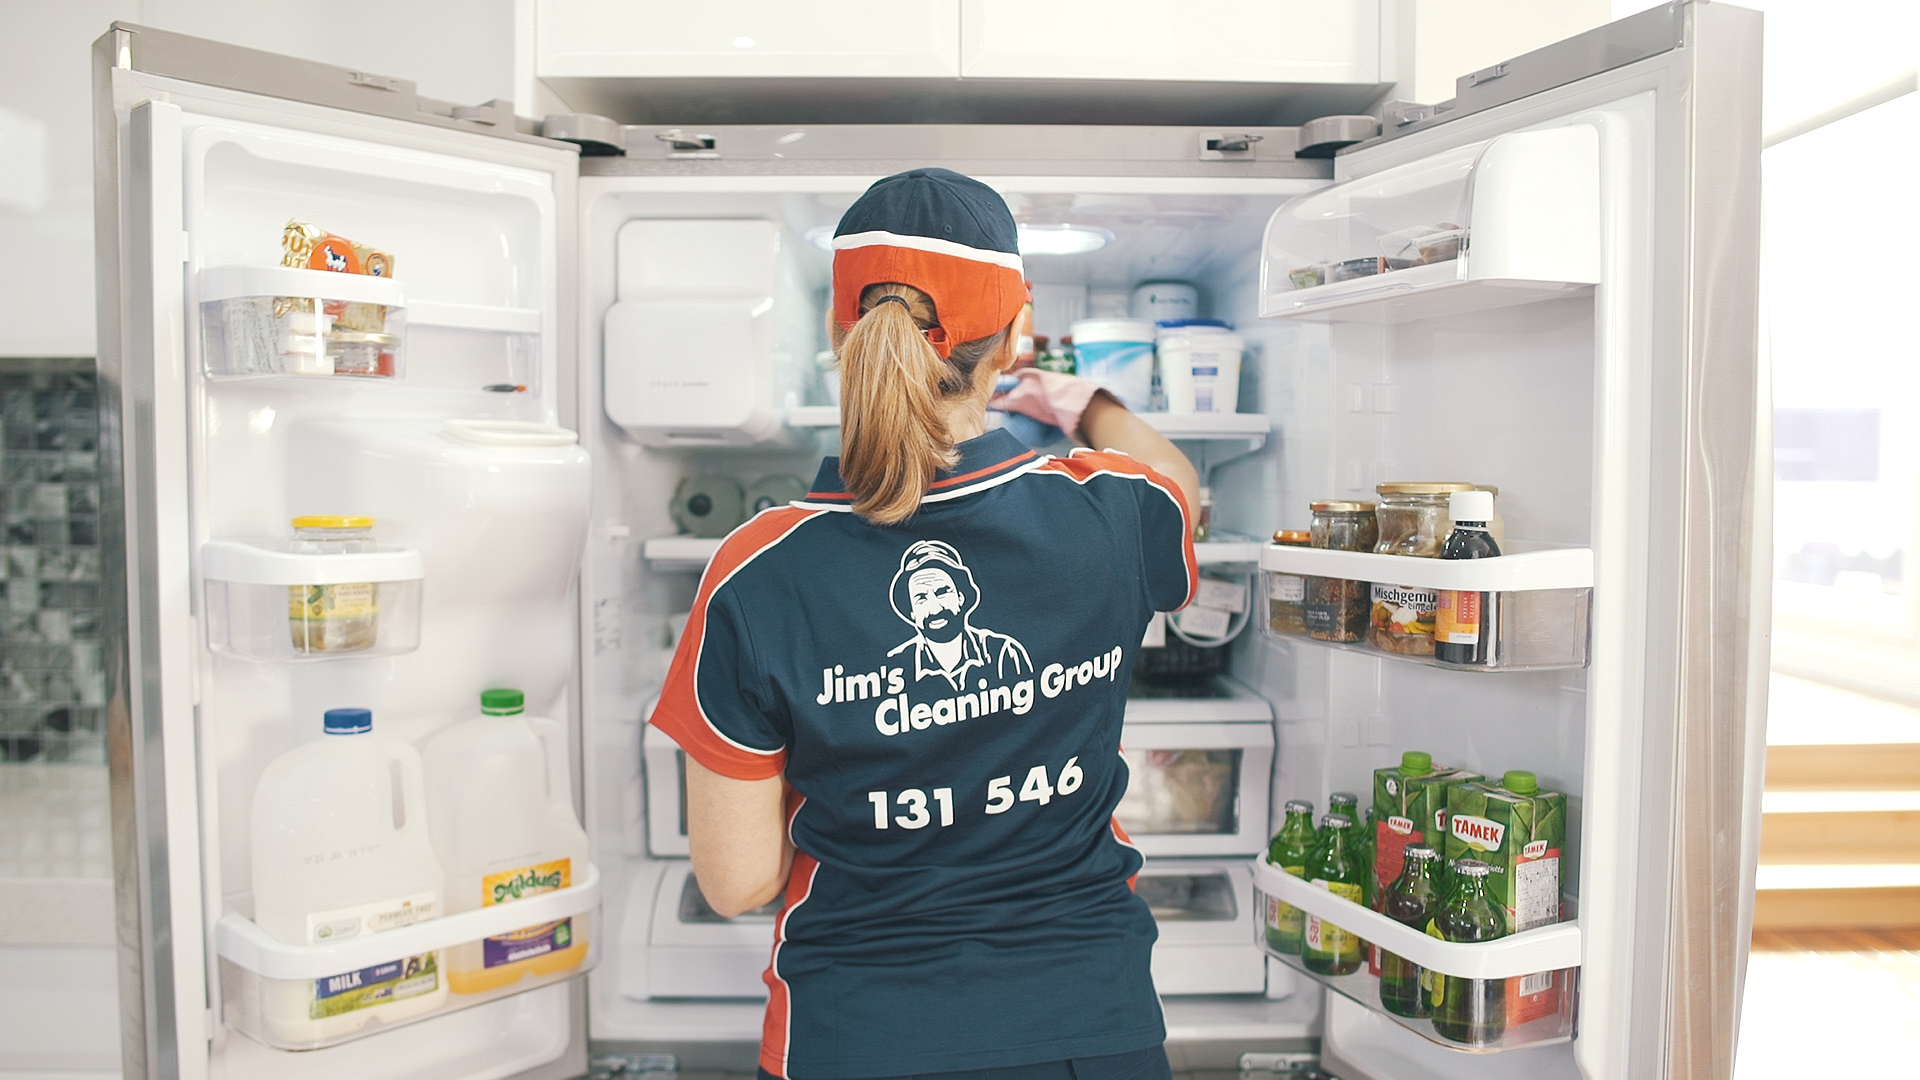 Jim's Cleaning Hawthorn Central - Hawthorn, VIC 3122 - (01) 3154 1546 | ShowMeLocal.com